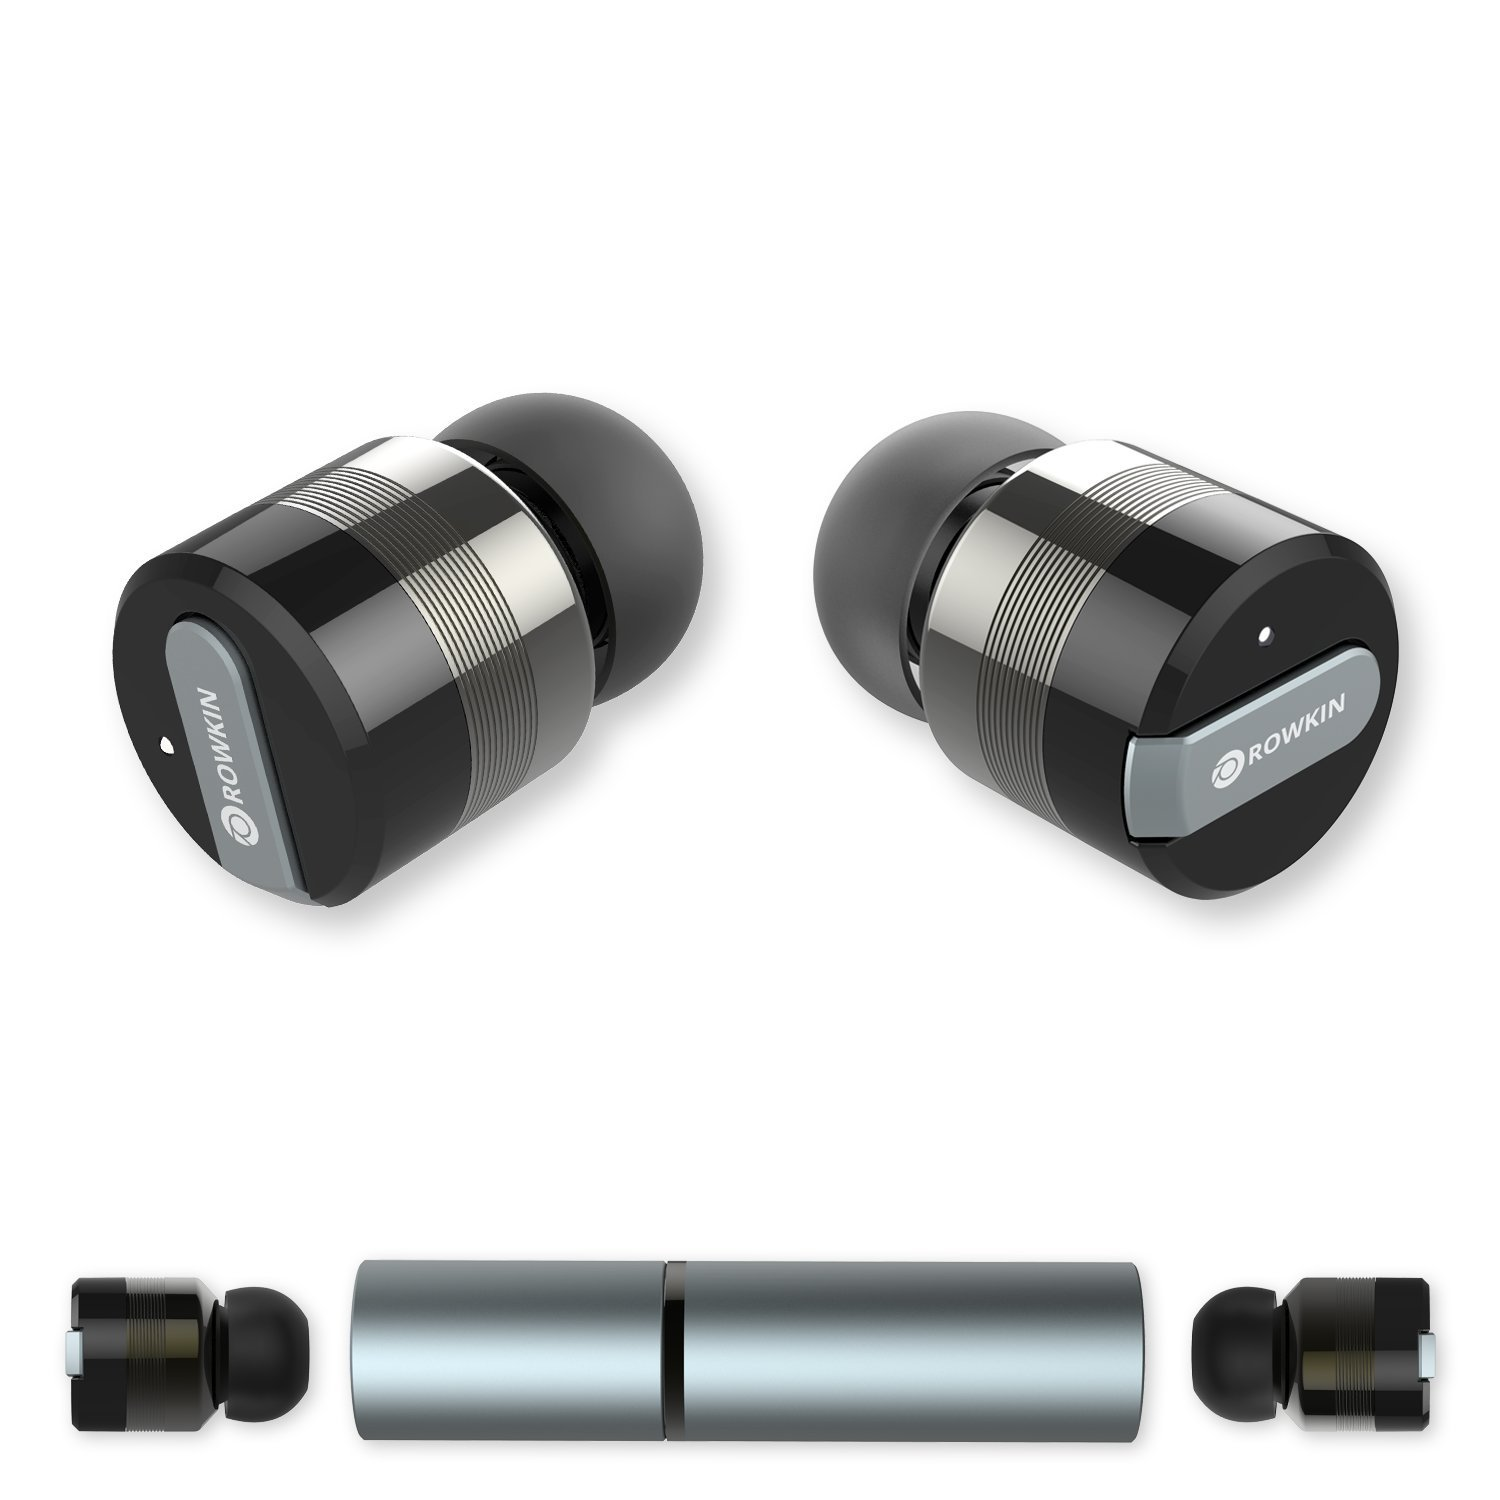 bluetooth headphones rowkin bit stereo wireless earbuds with mic smallest co ebay. Black Bedroom Furniture Sets. Home Design Ideas